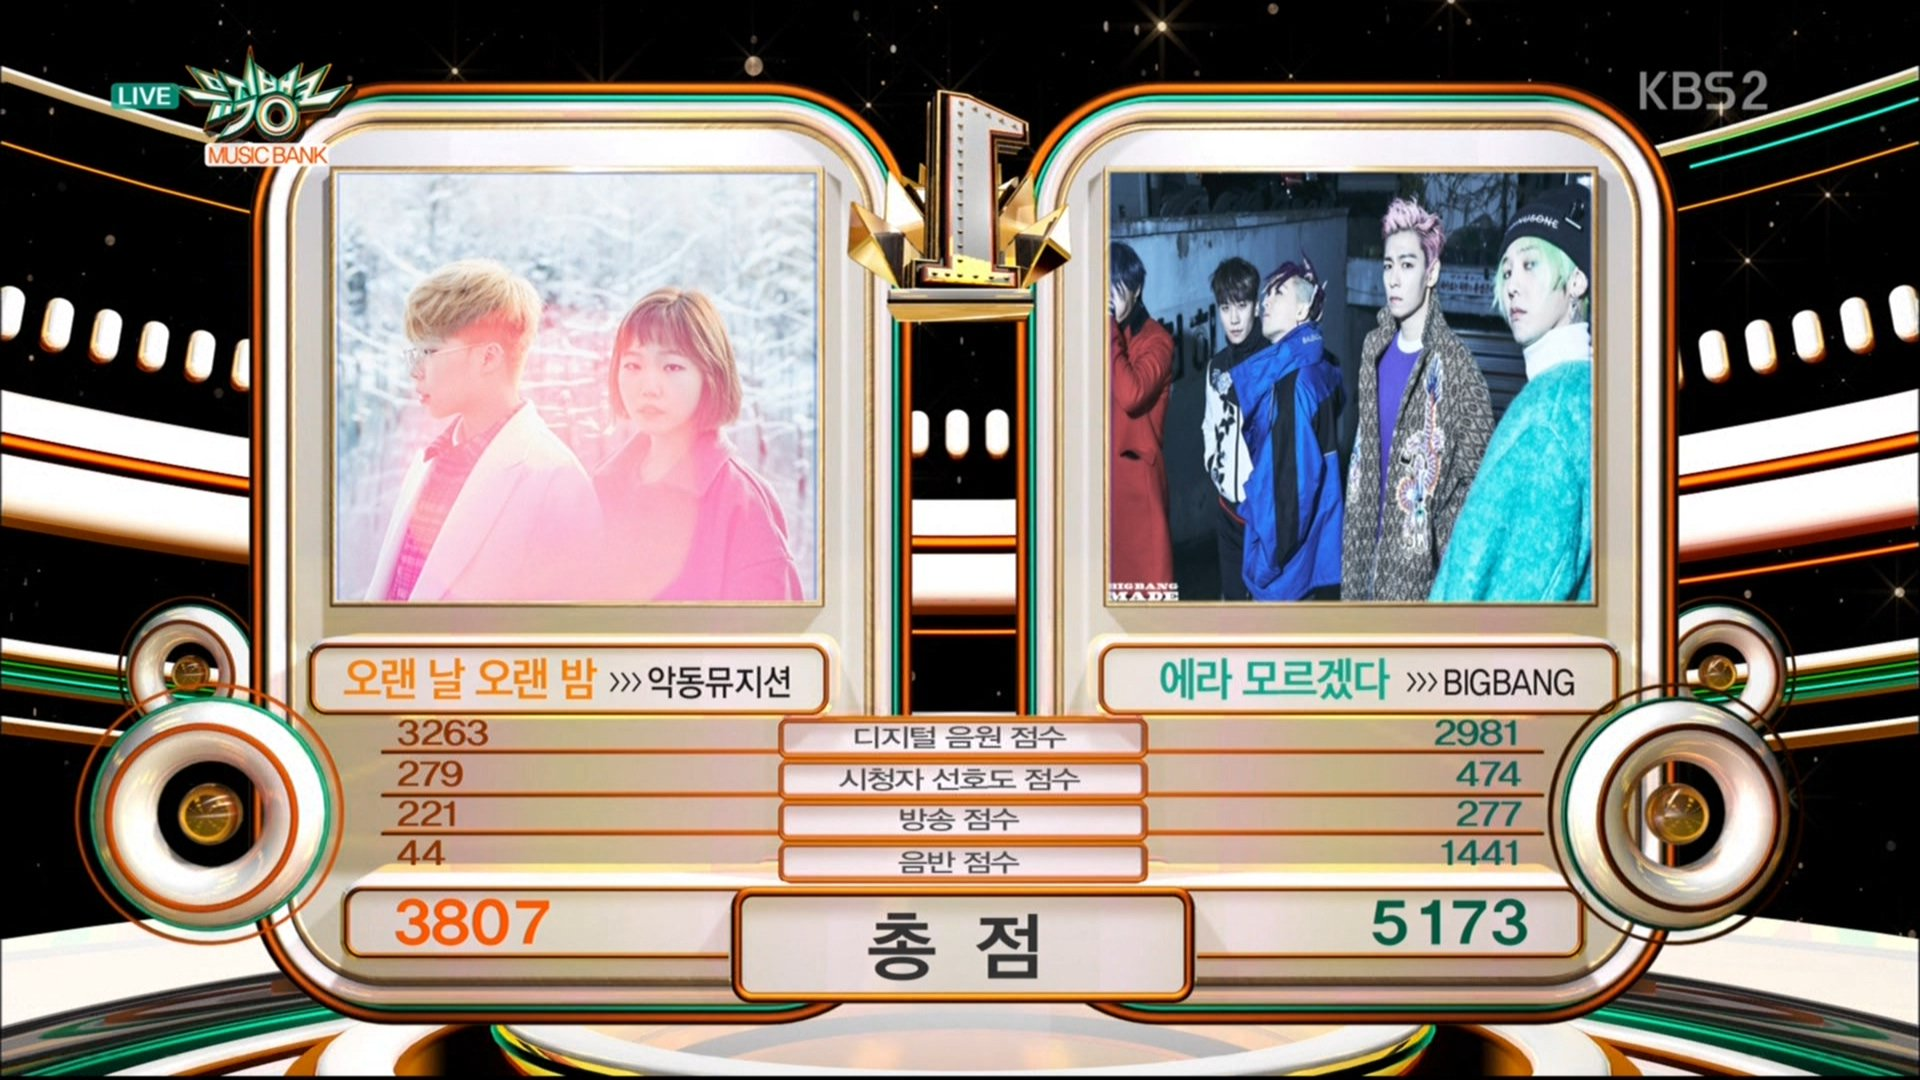 bigbang music bank win fxxk it